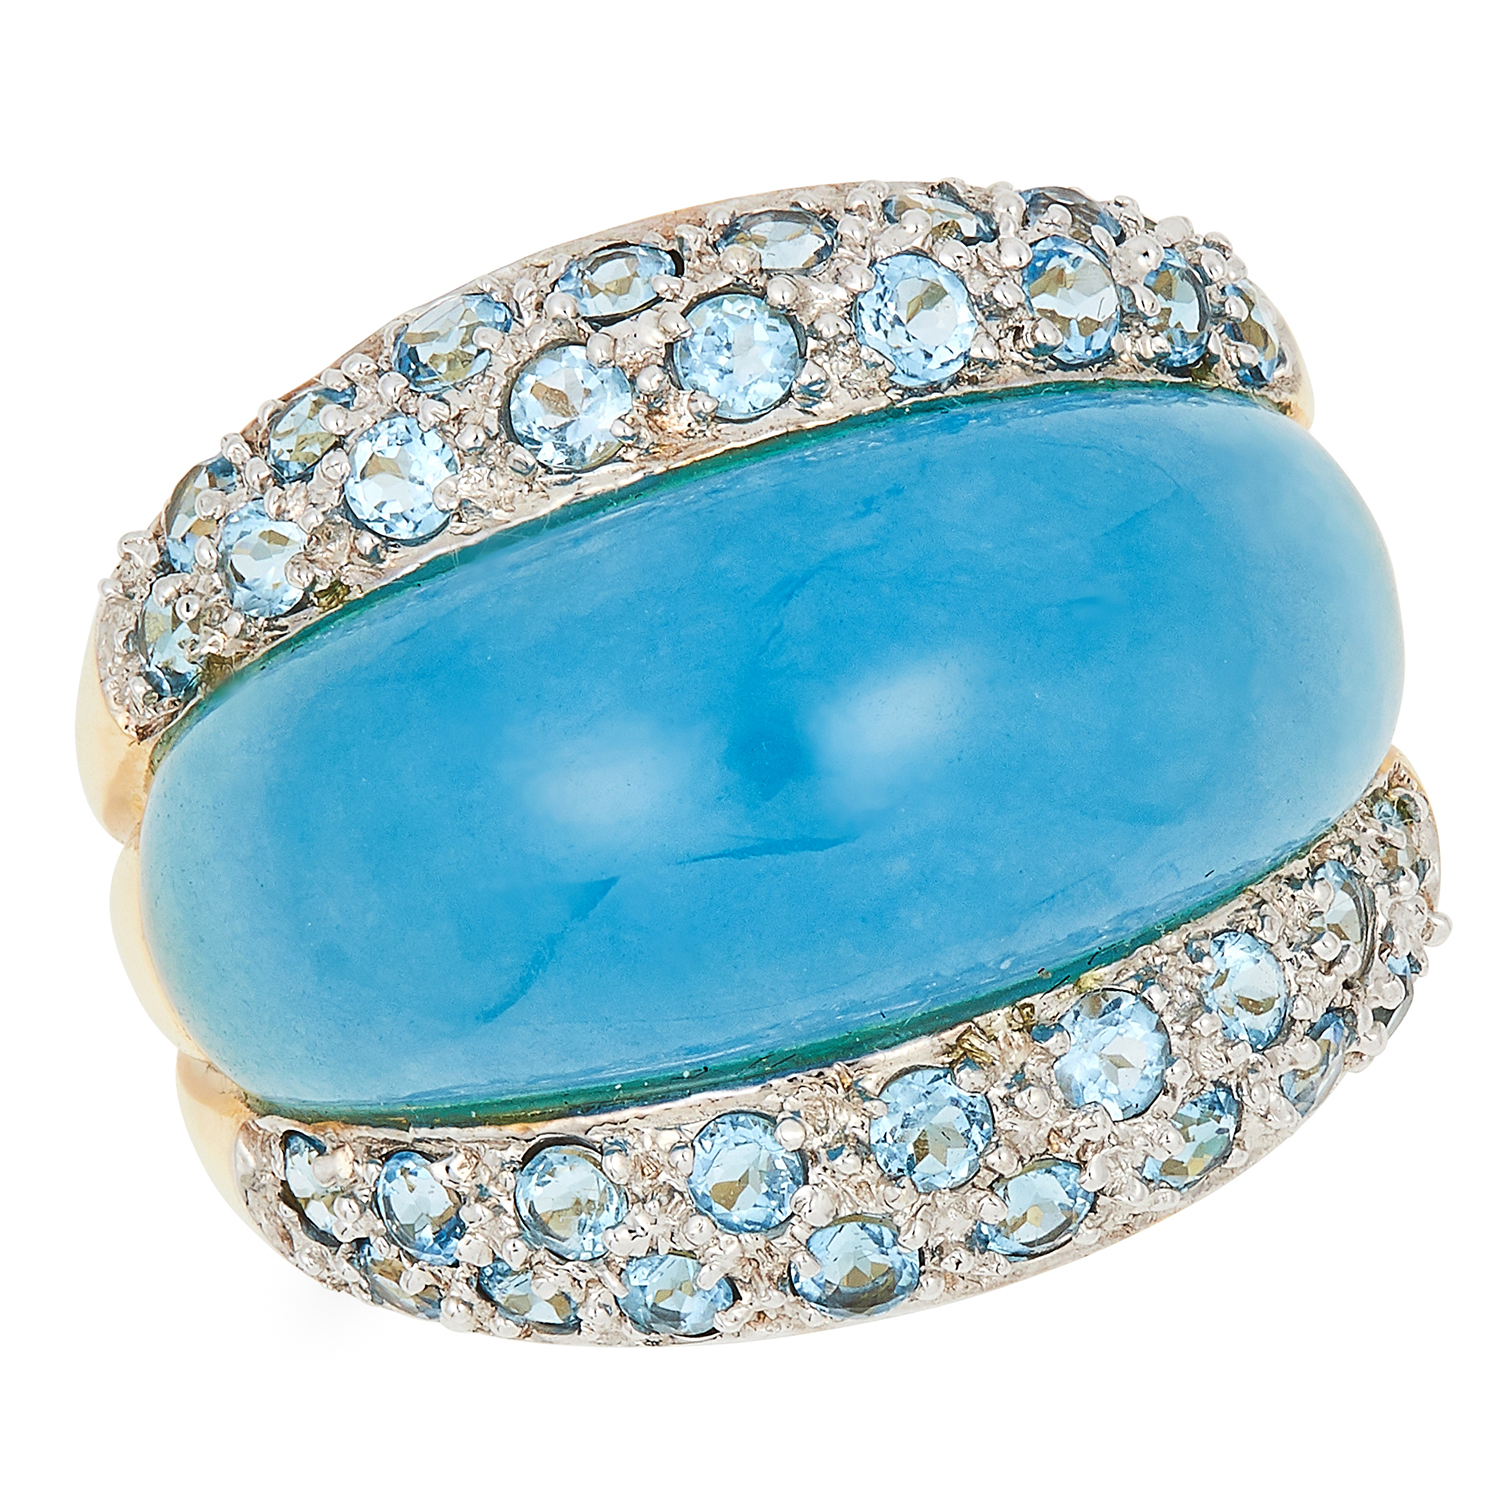 Los 170 - BLUE HARDSTONE BOMBE RING, set with a blue hard stone and round cut blue stones, size M / 6, 7.1g.